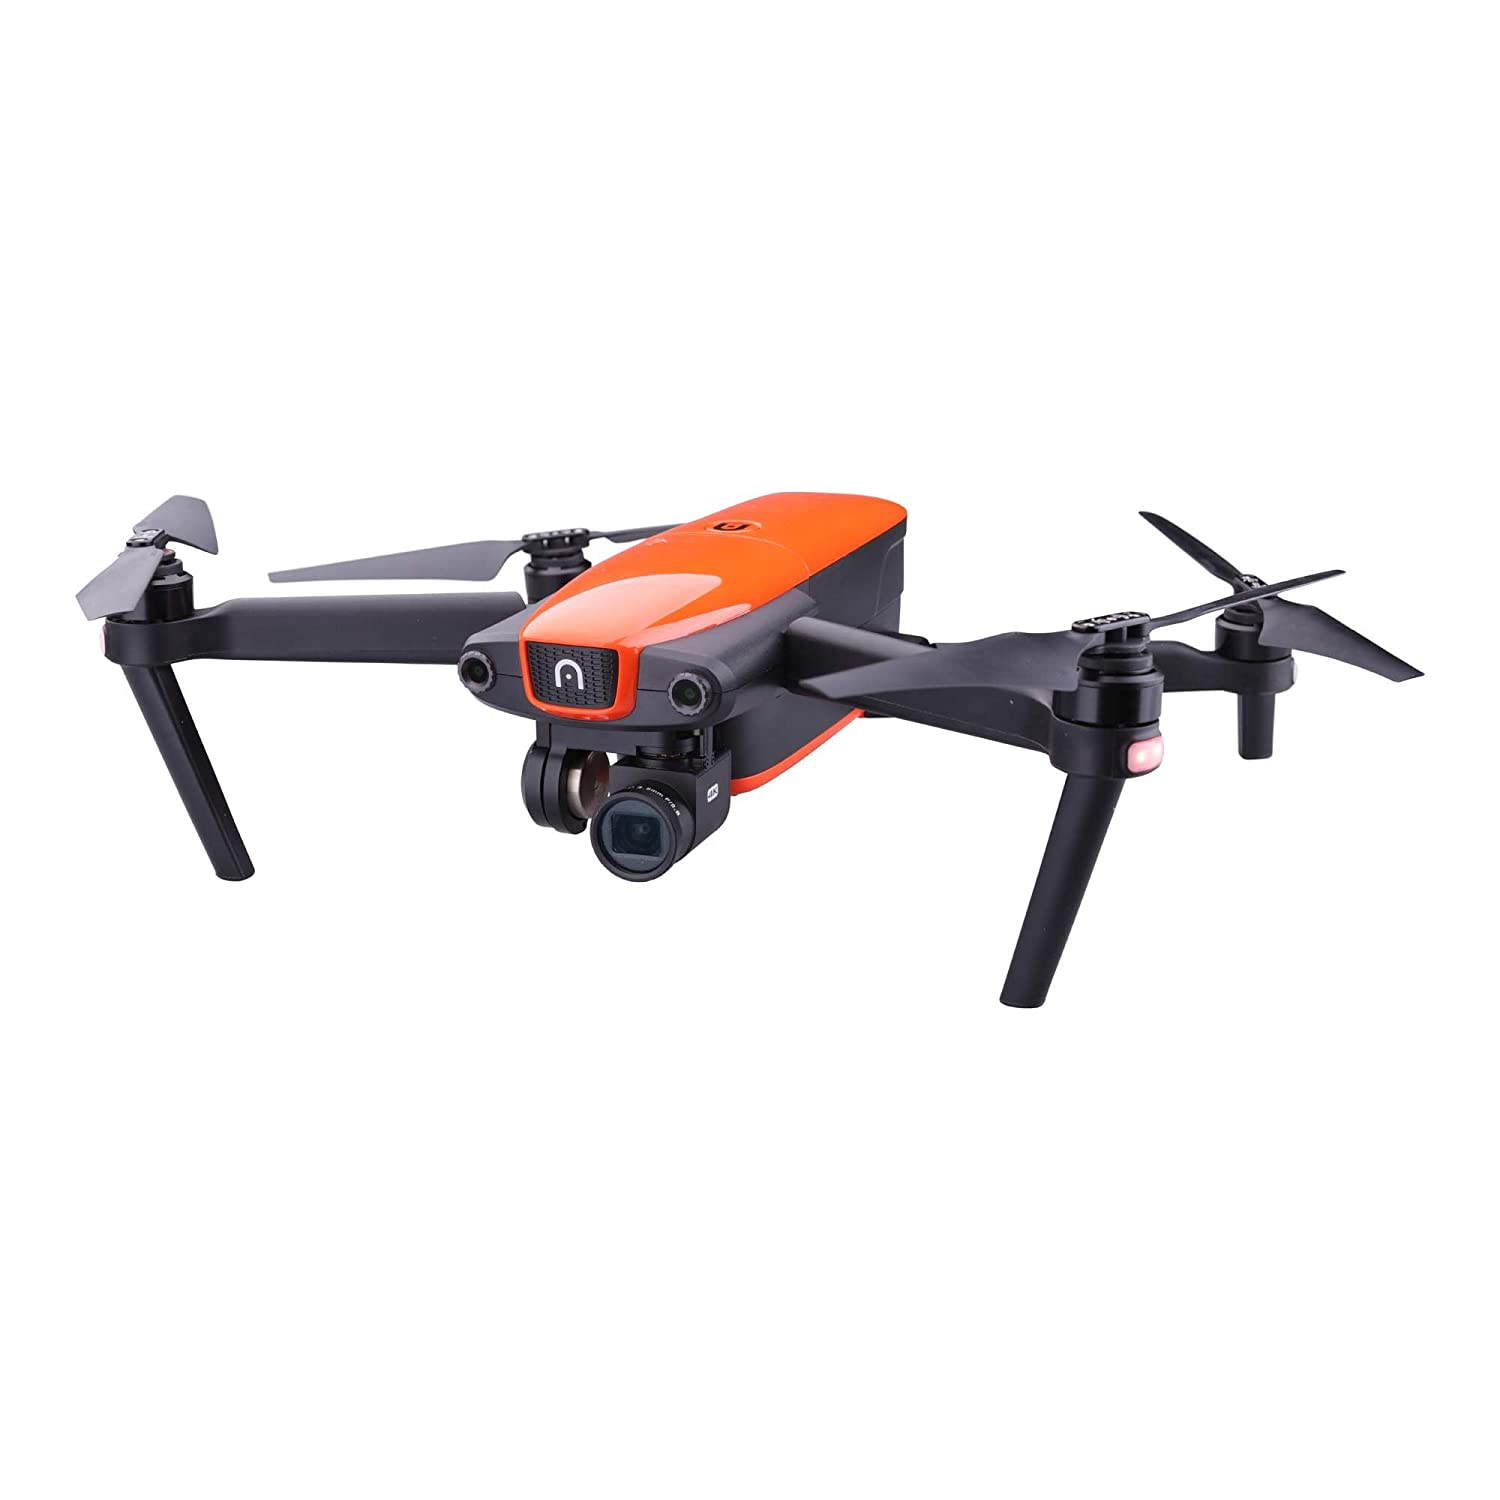 Autel Robotics Drone Cyber Monday Deals 2019